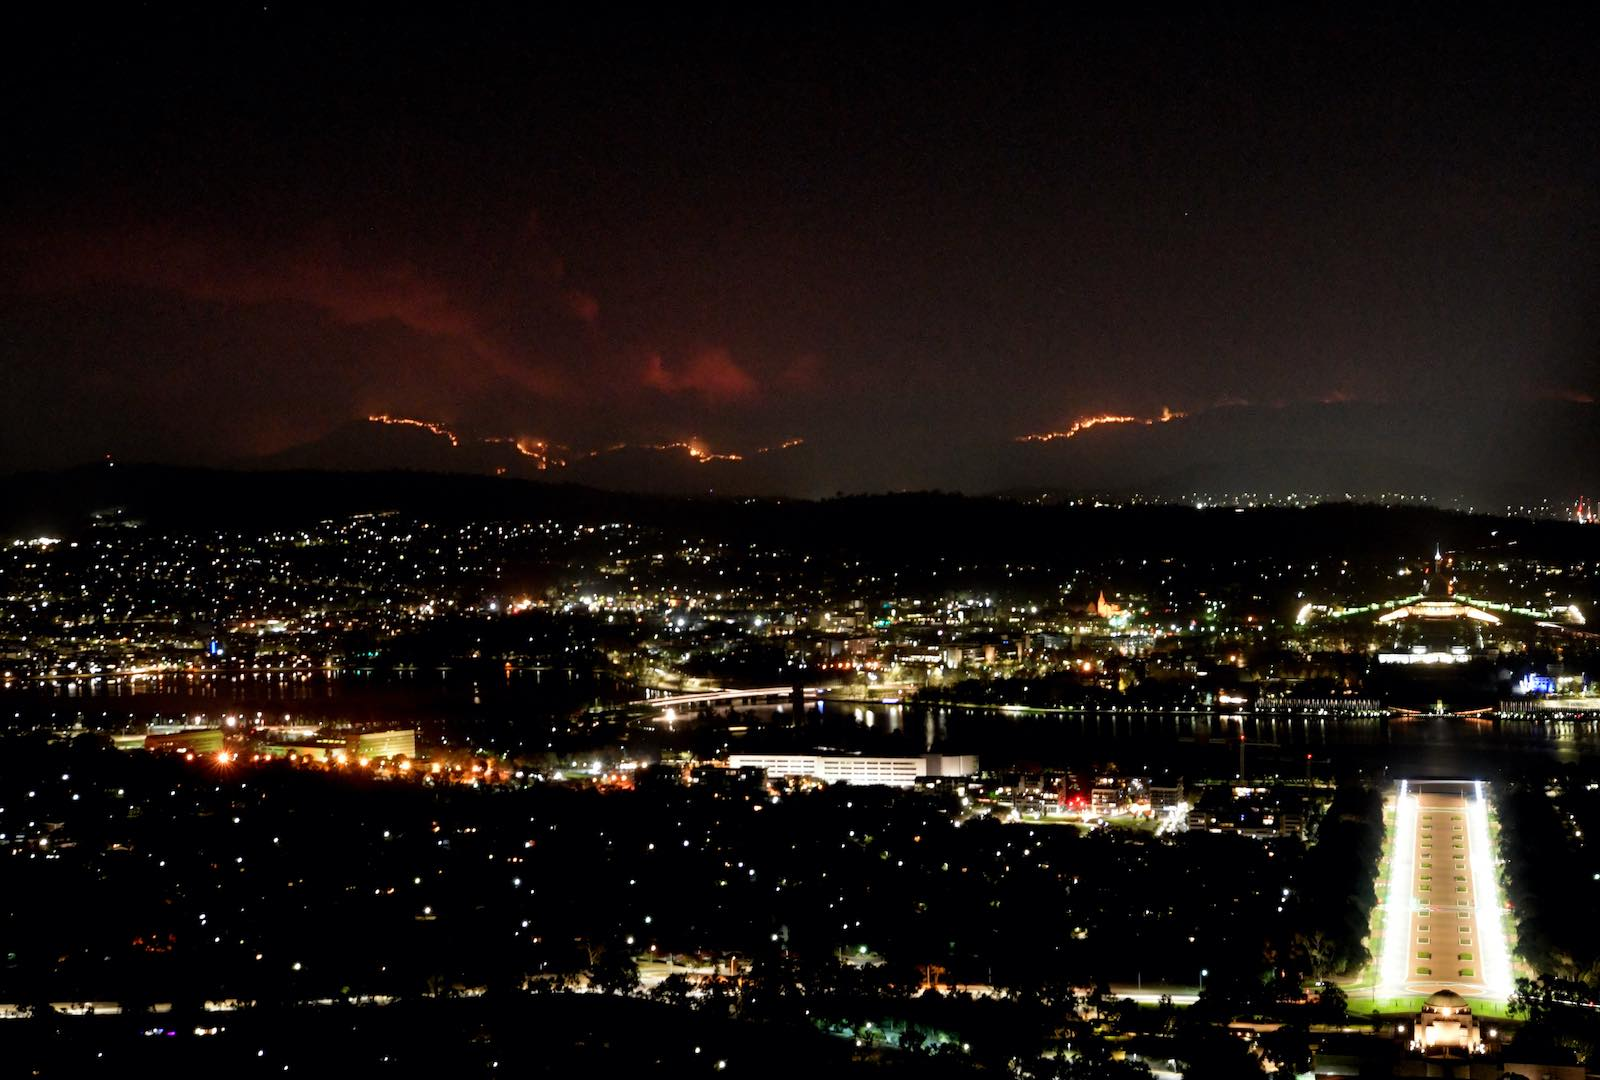 The Orroral Valley fire burns near Canberra, 31 January 2020 (Tracey Nearmy/Getty Images)